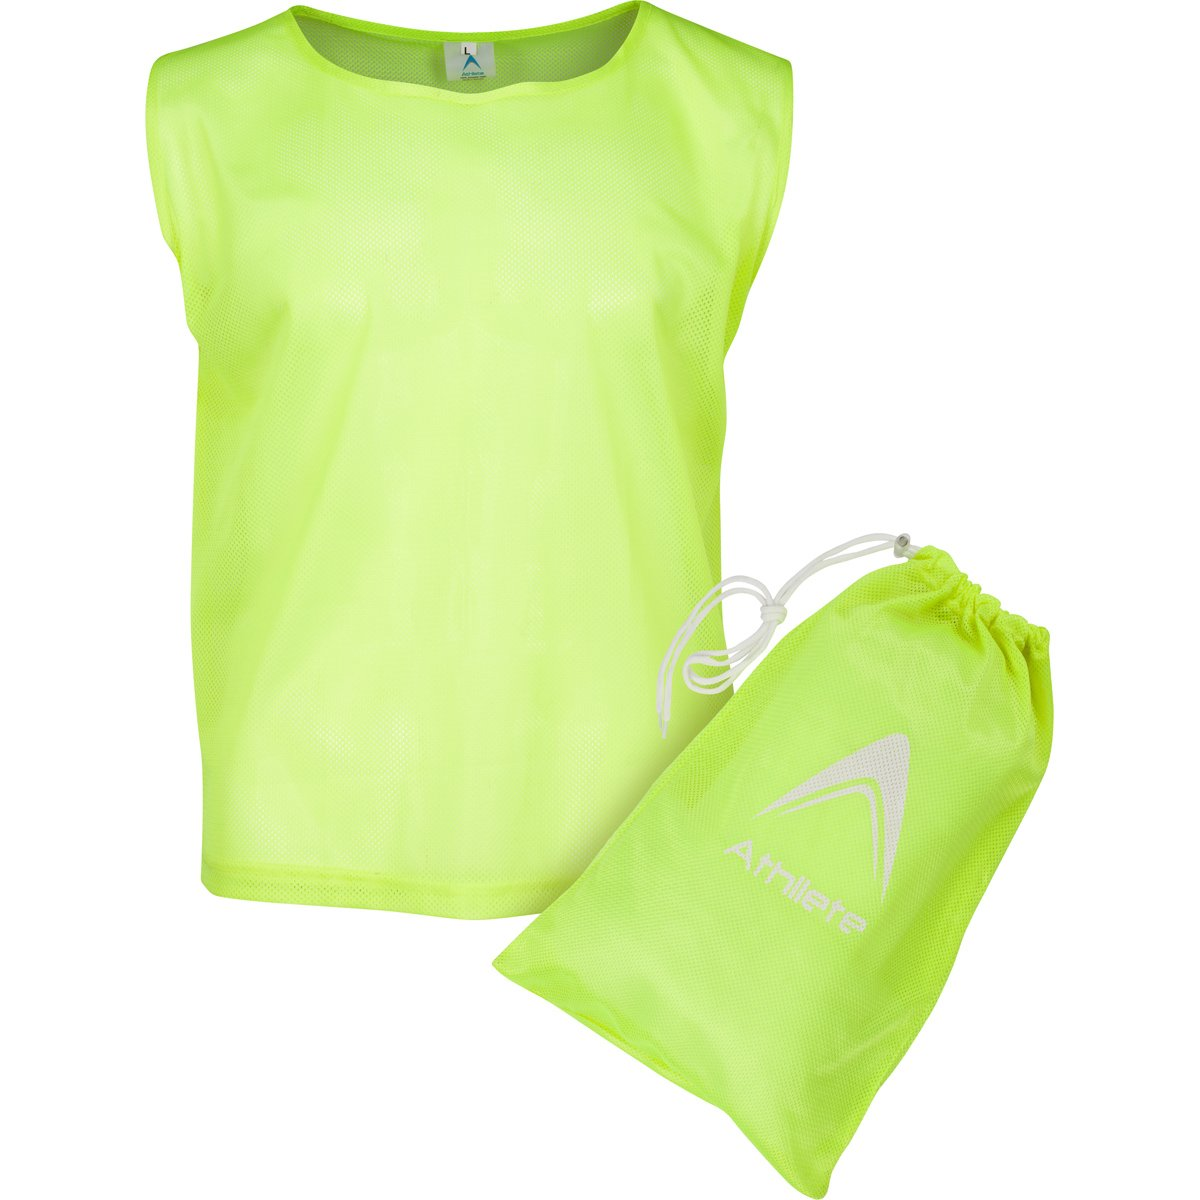 Athllete Set of 12 - Child Scrimmage Vests/Pinnies/Team Practice Jerseys with Free Carry Bag (Neon Yellow, Small) by Athllete